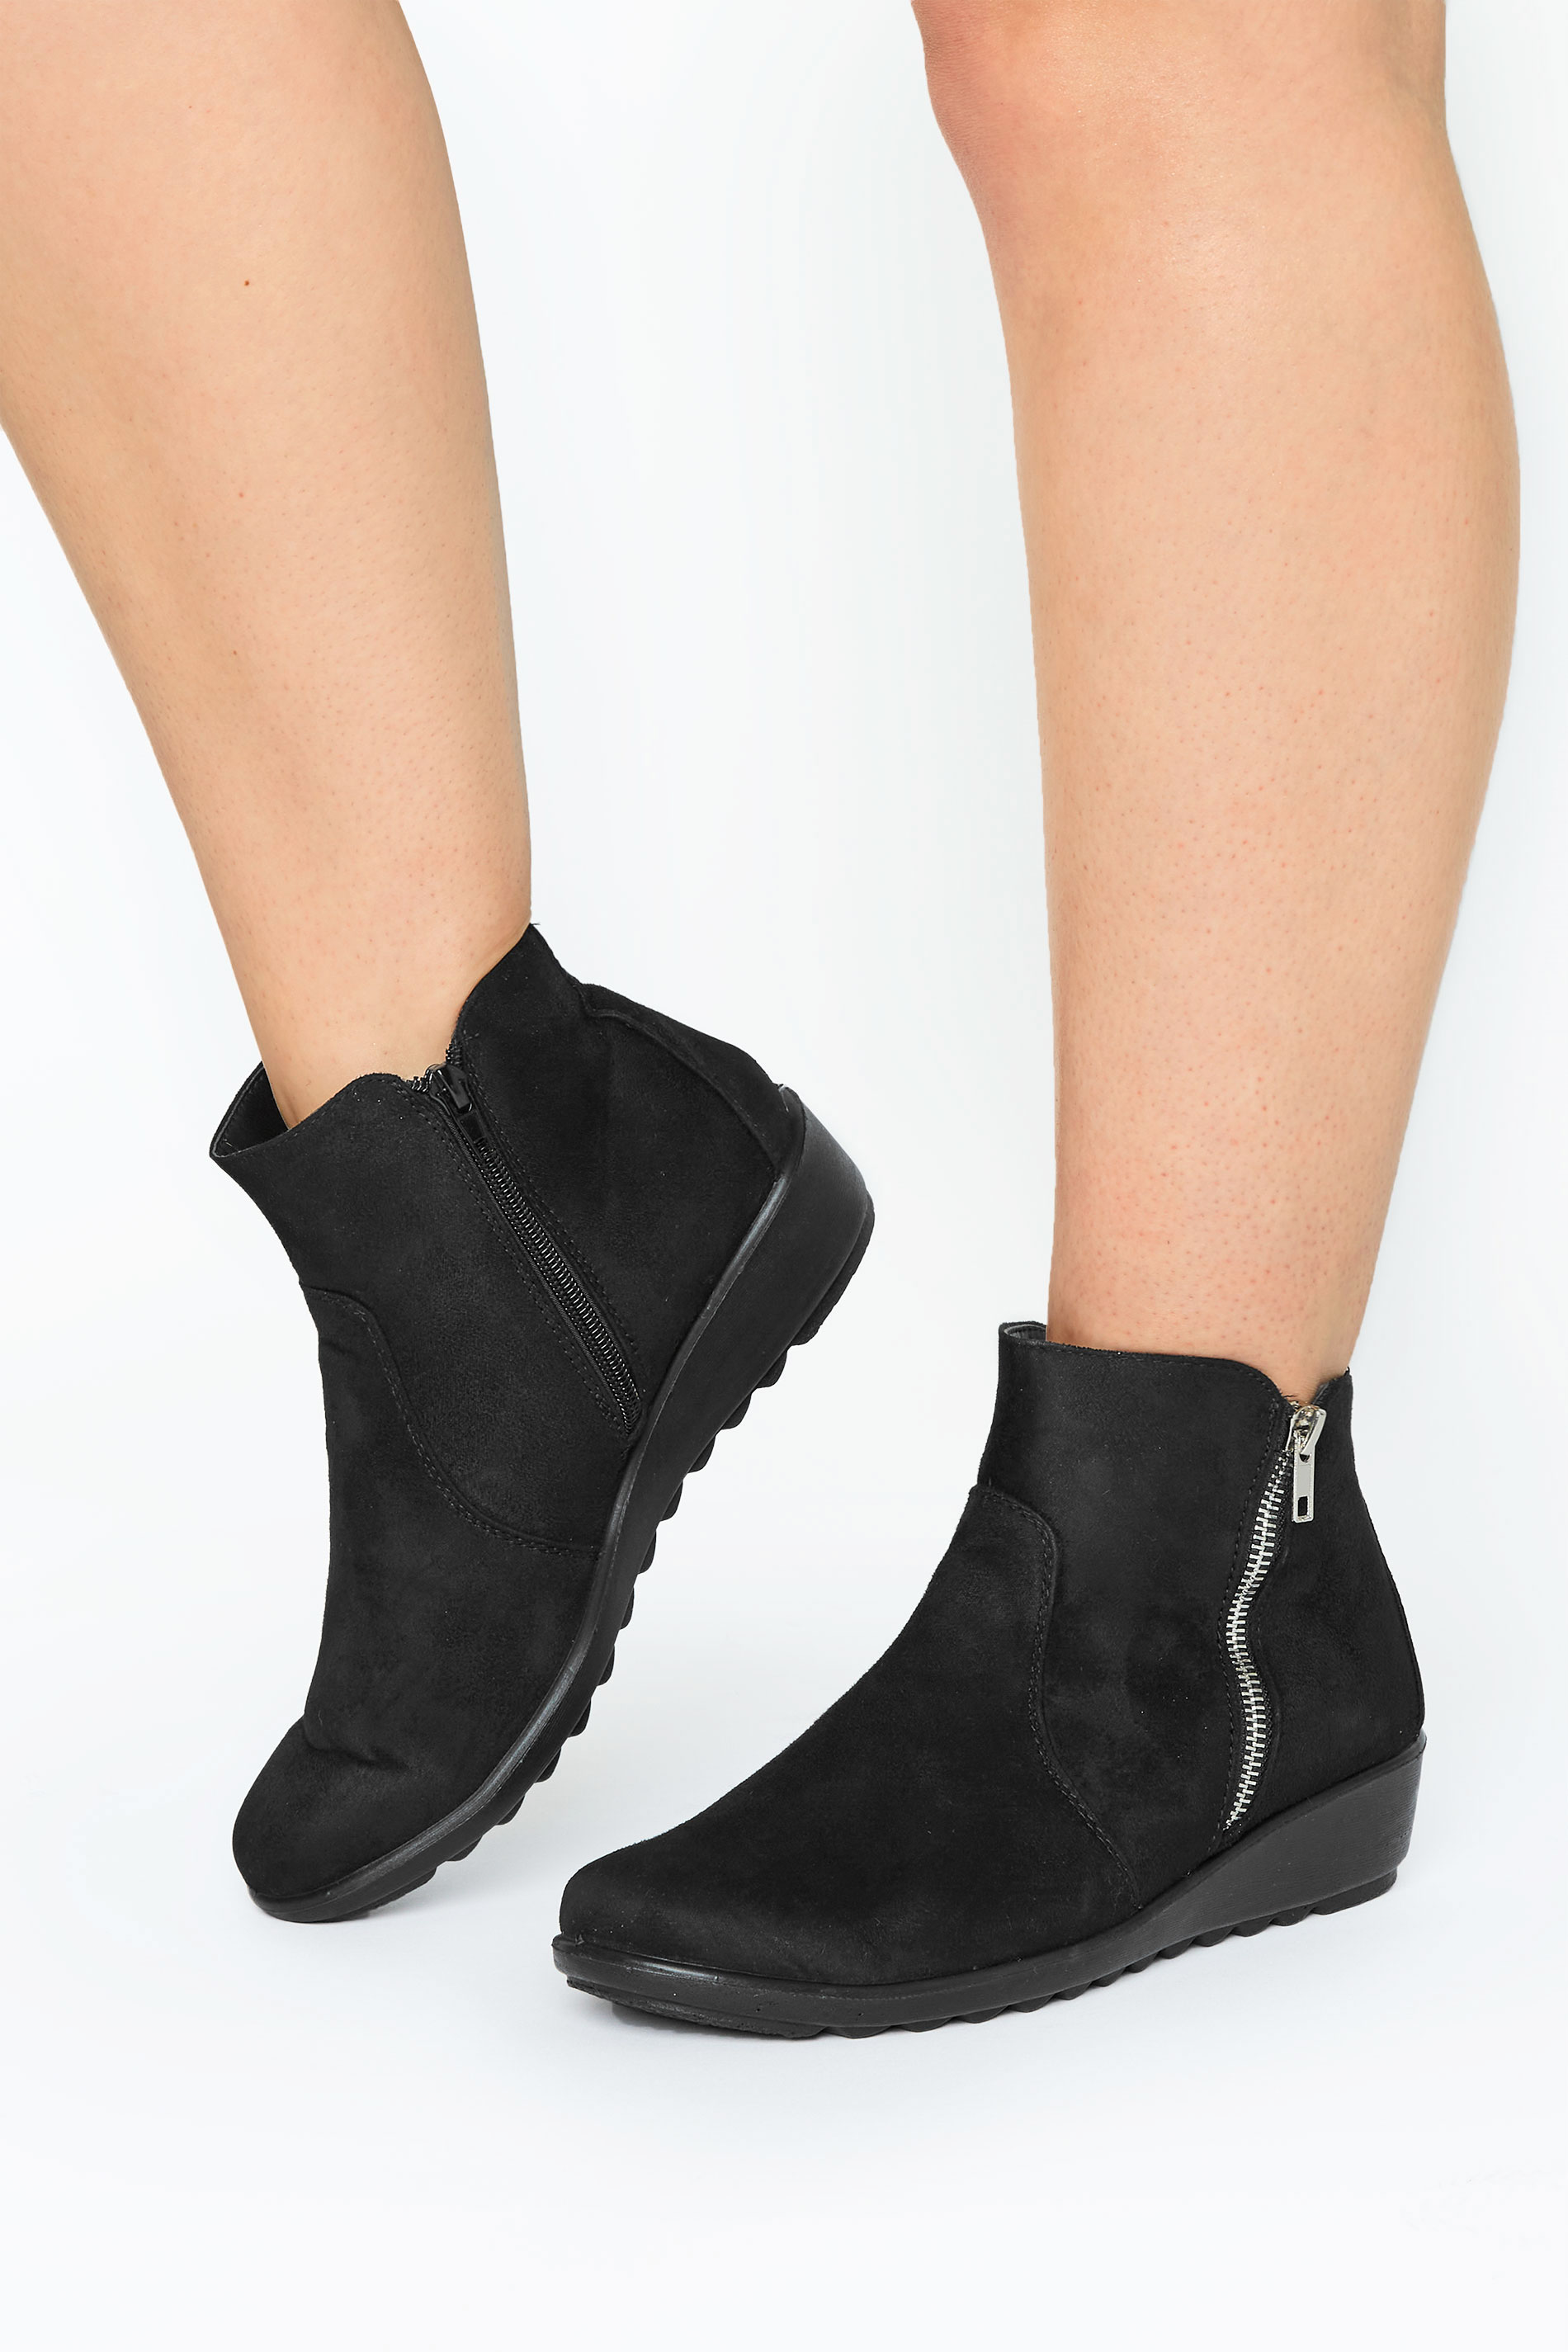 Black Vegan Suede Wedge Heel Ankle Boots In Extra Wide Fit